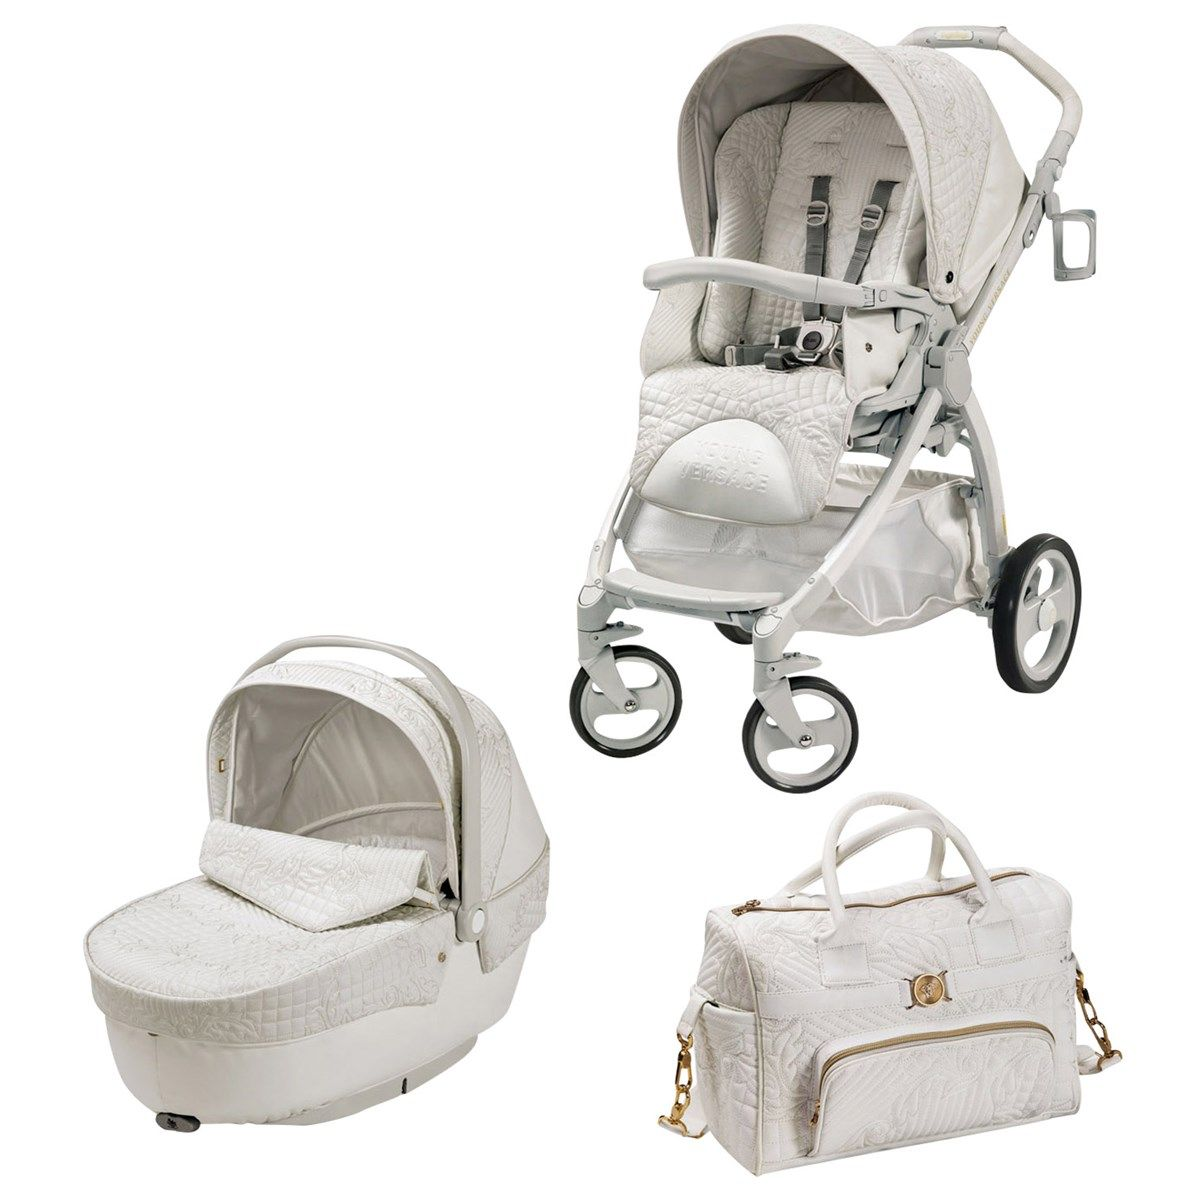 Young Versace Baby White Stroller And Travel Set The Stroller From Young Versace Is The Most Luxurious And